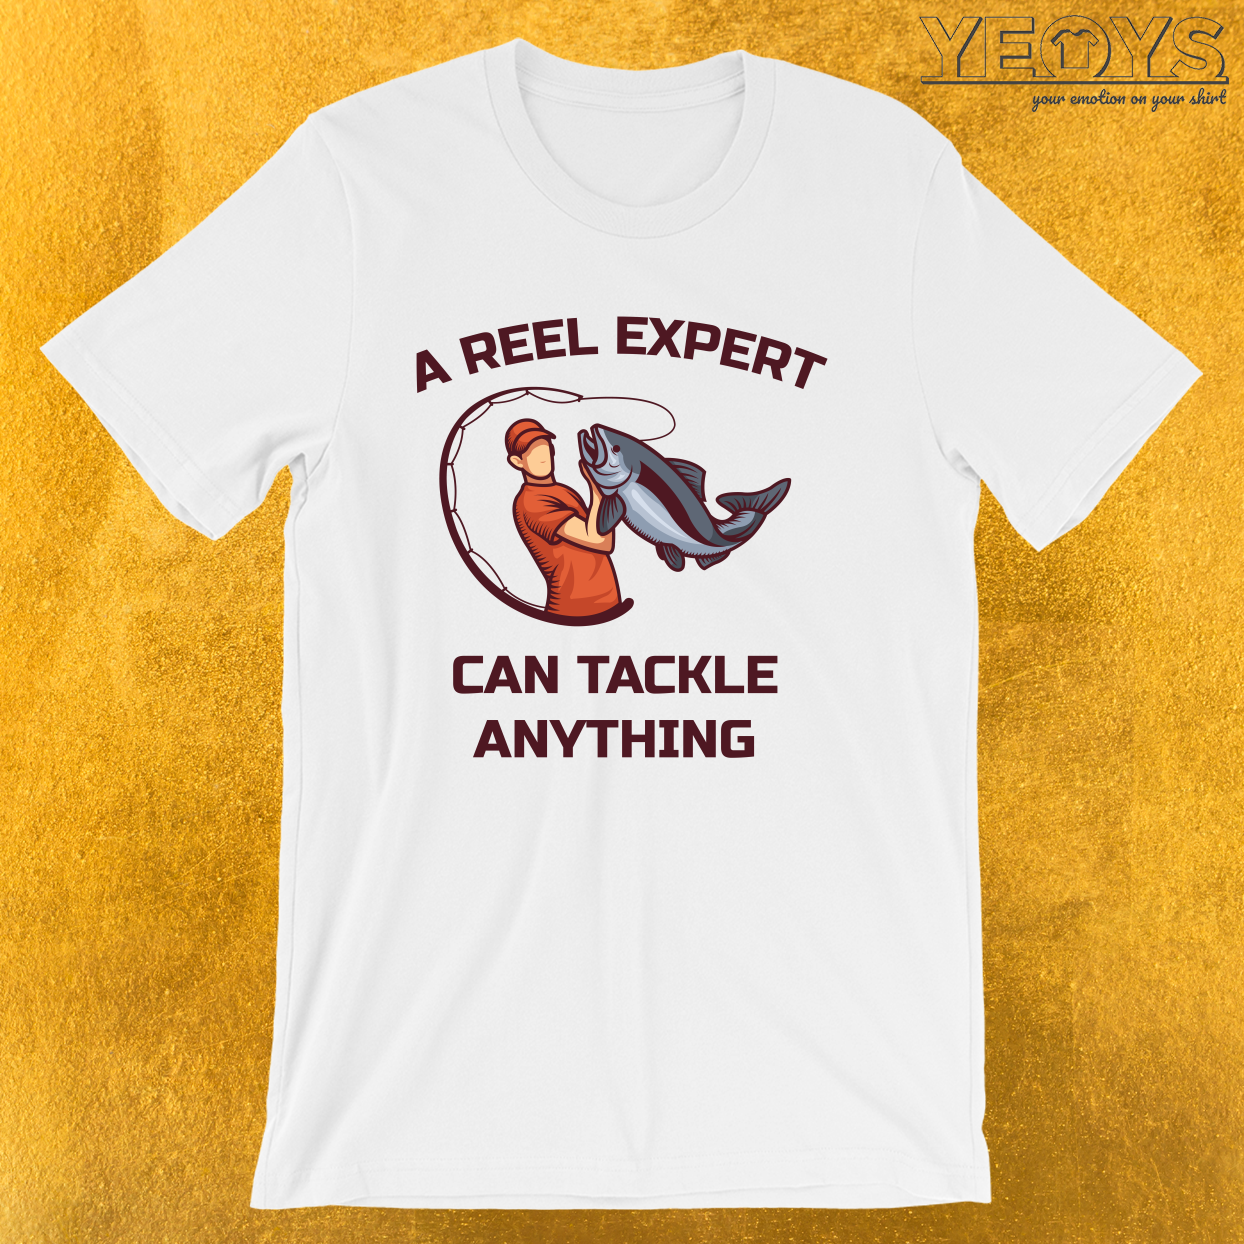 A Reel Expert Can Tackle Anything – Funny Fishing Tee